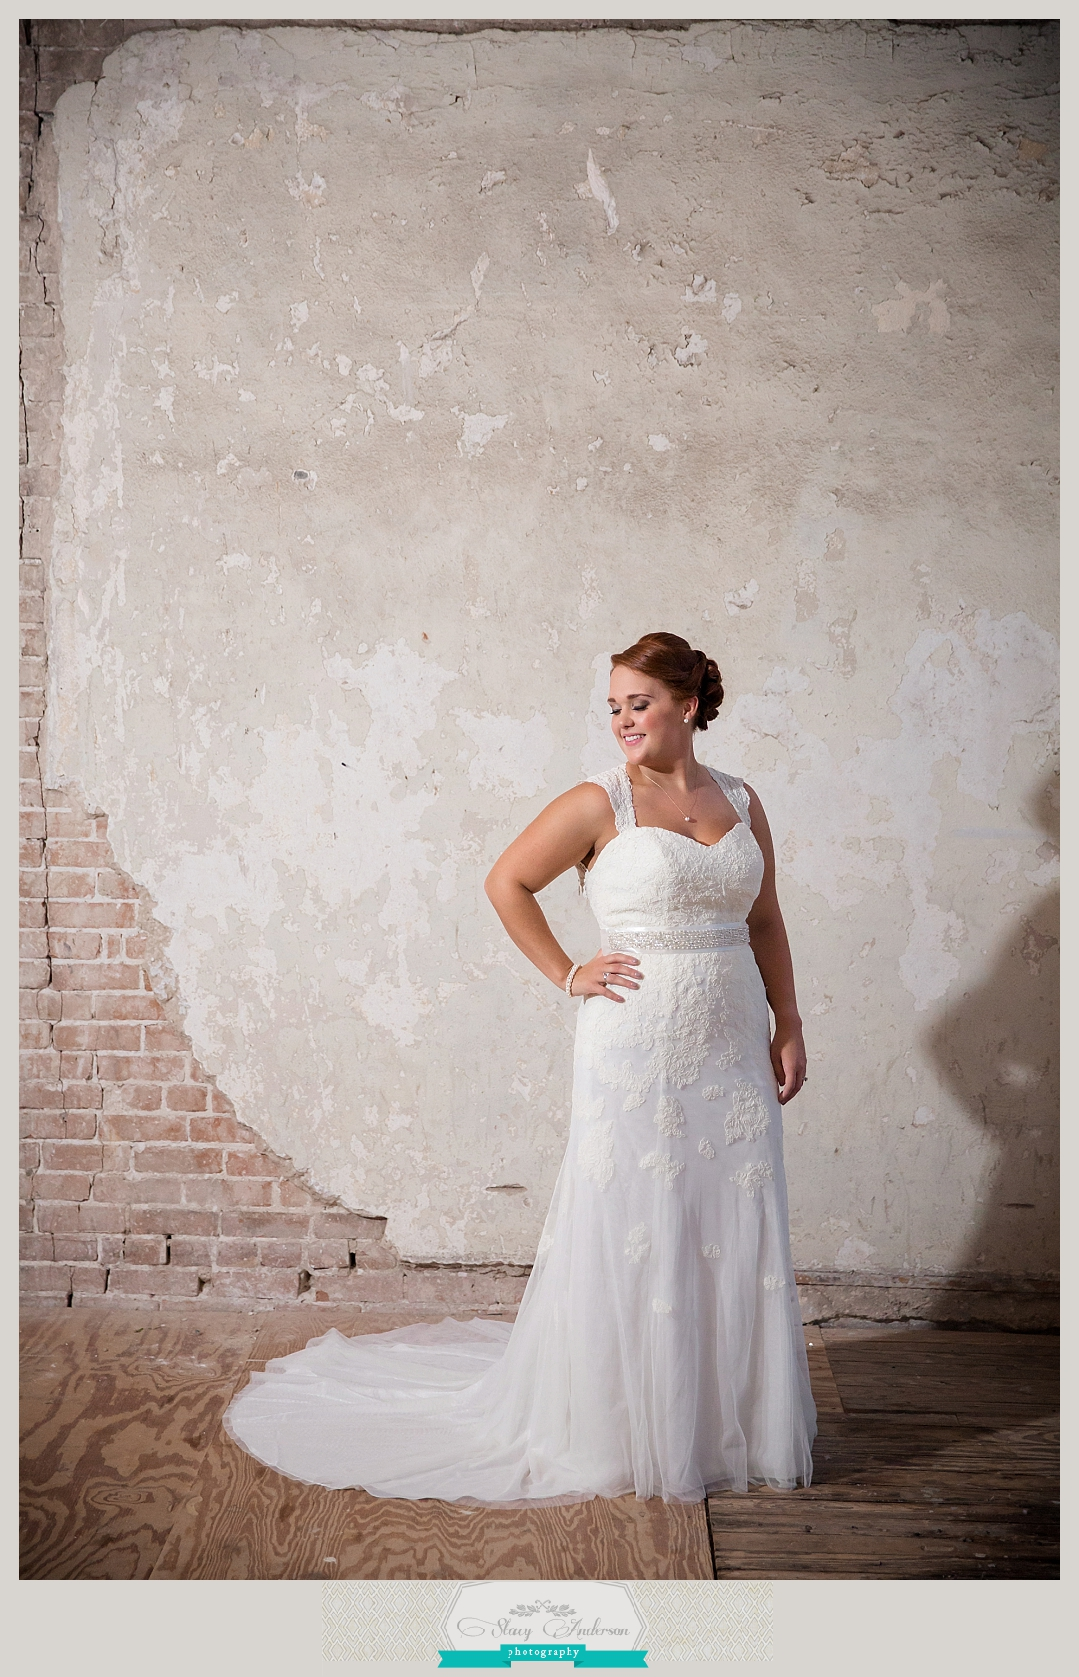 Houston Studio Bridal Wedding Photographer (3)